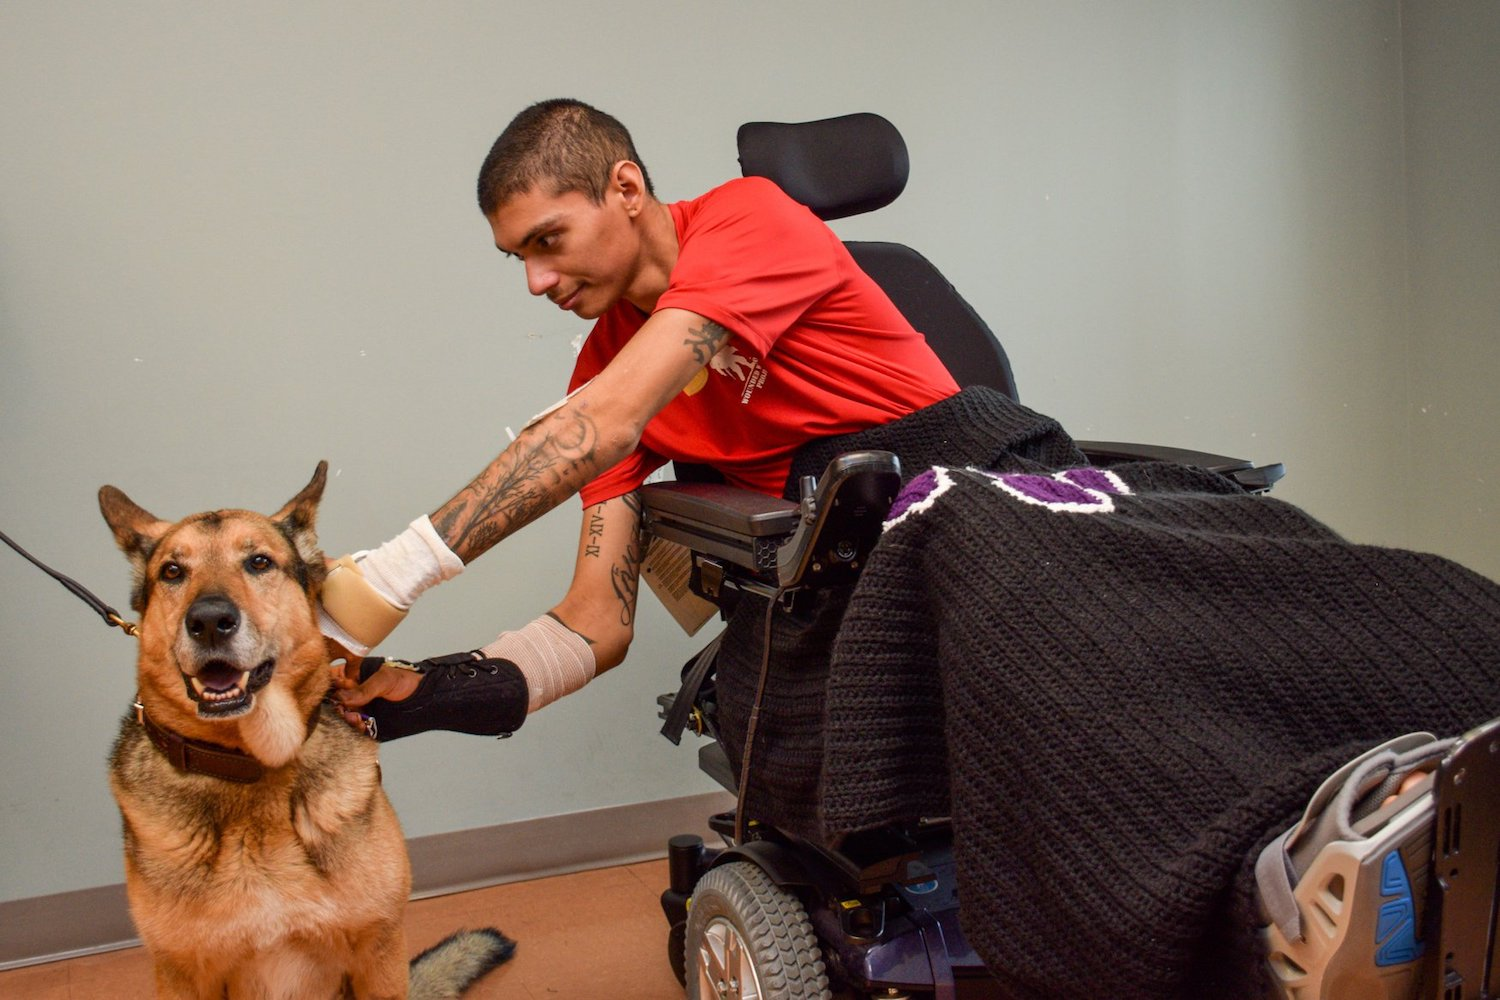 Wounded Us Soldier Injured Military Dog Back Together In Texas